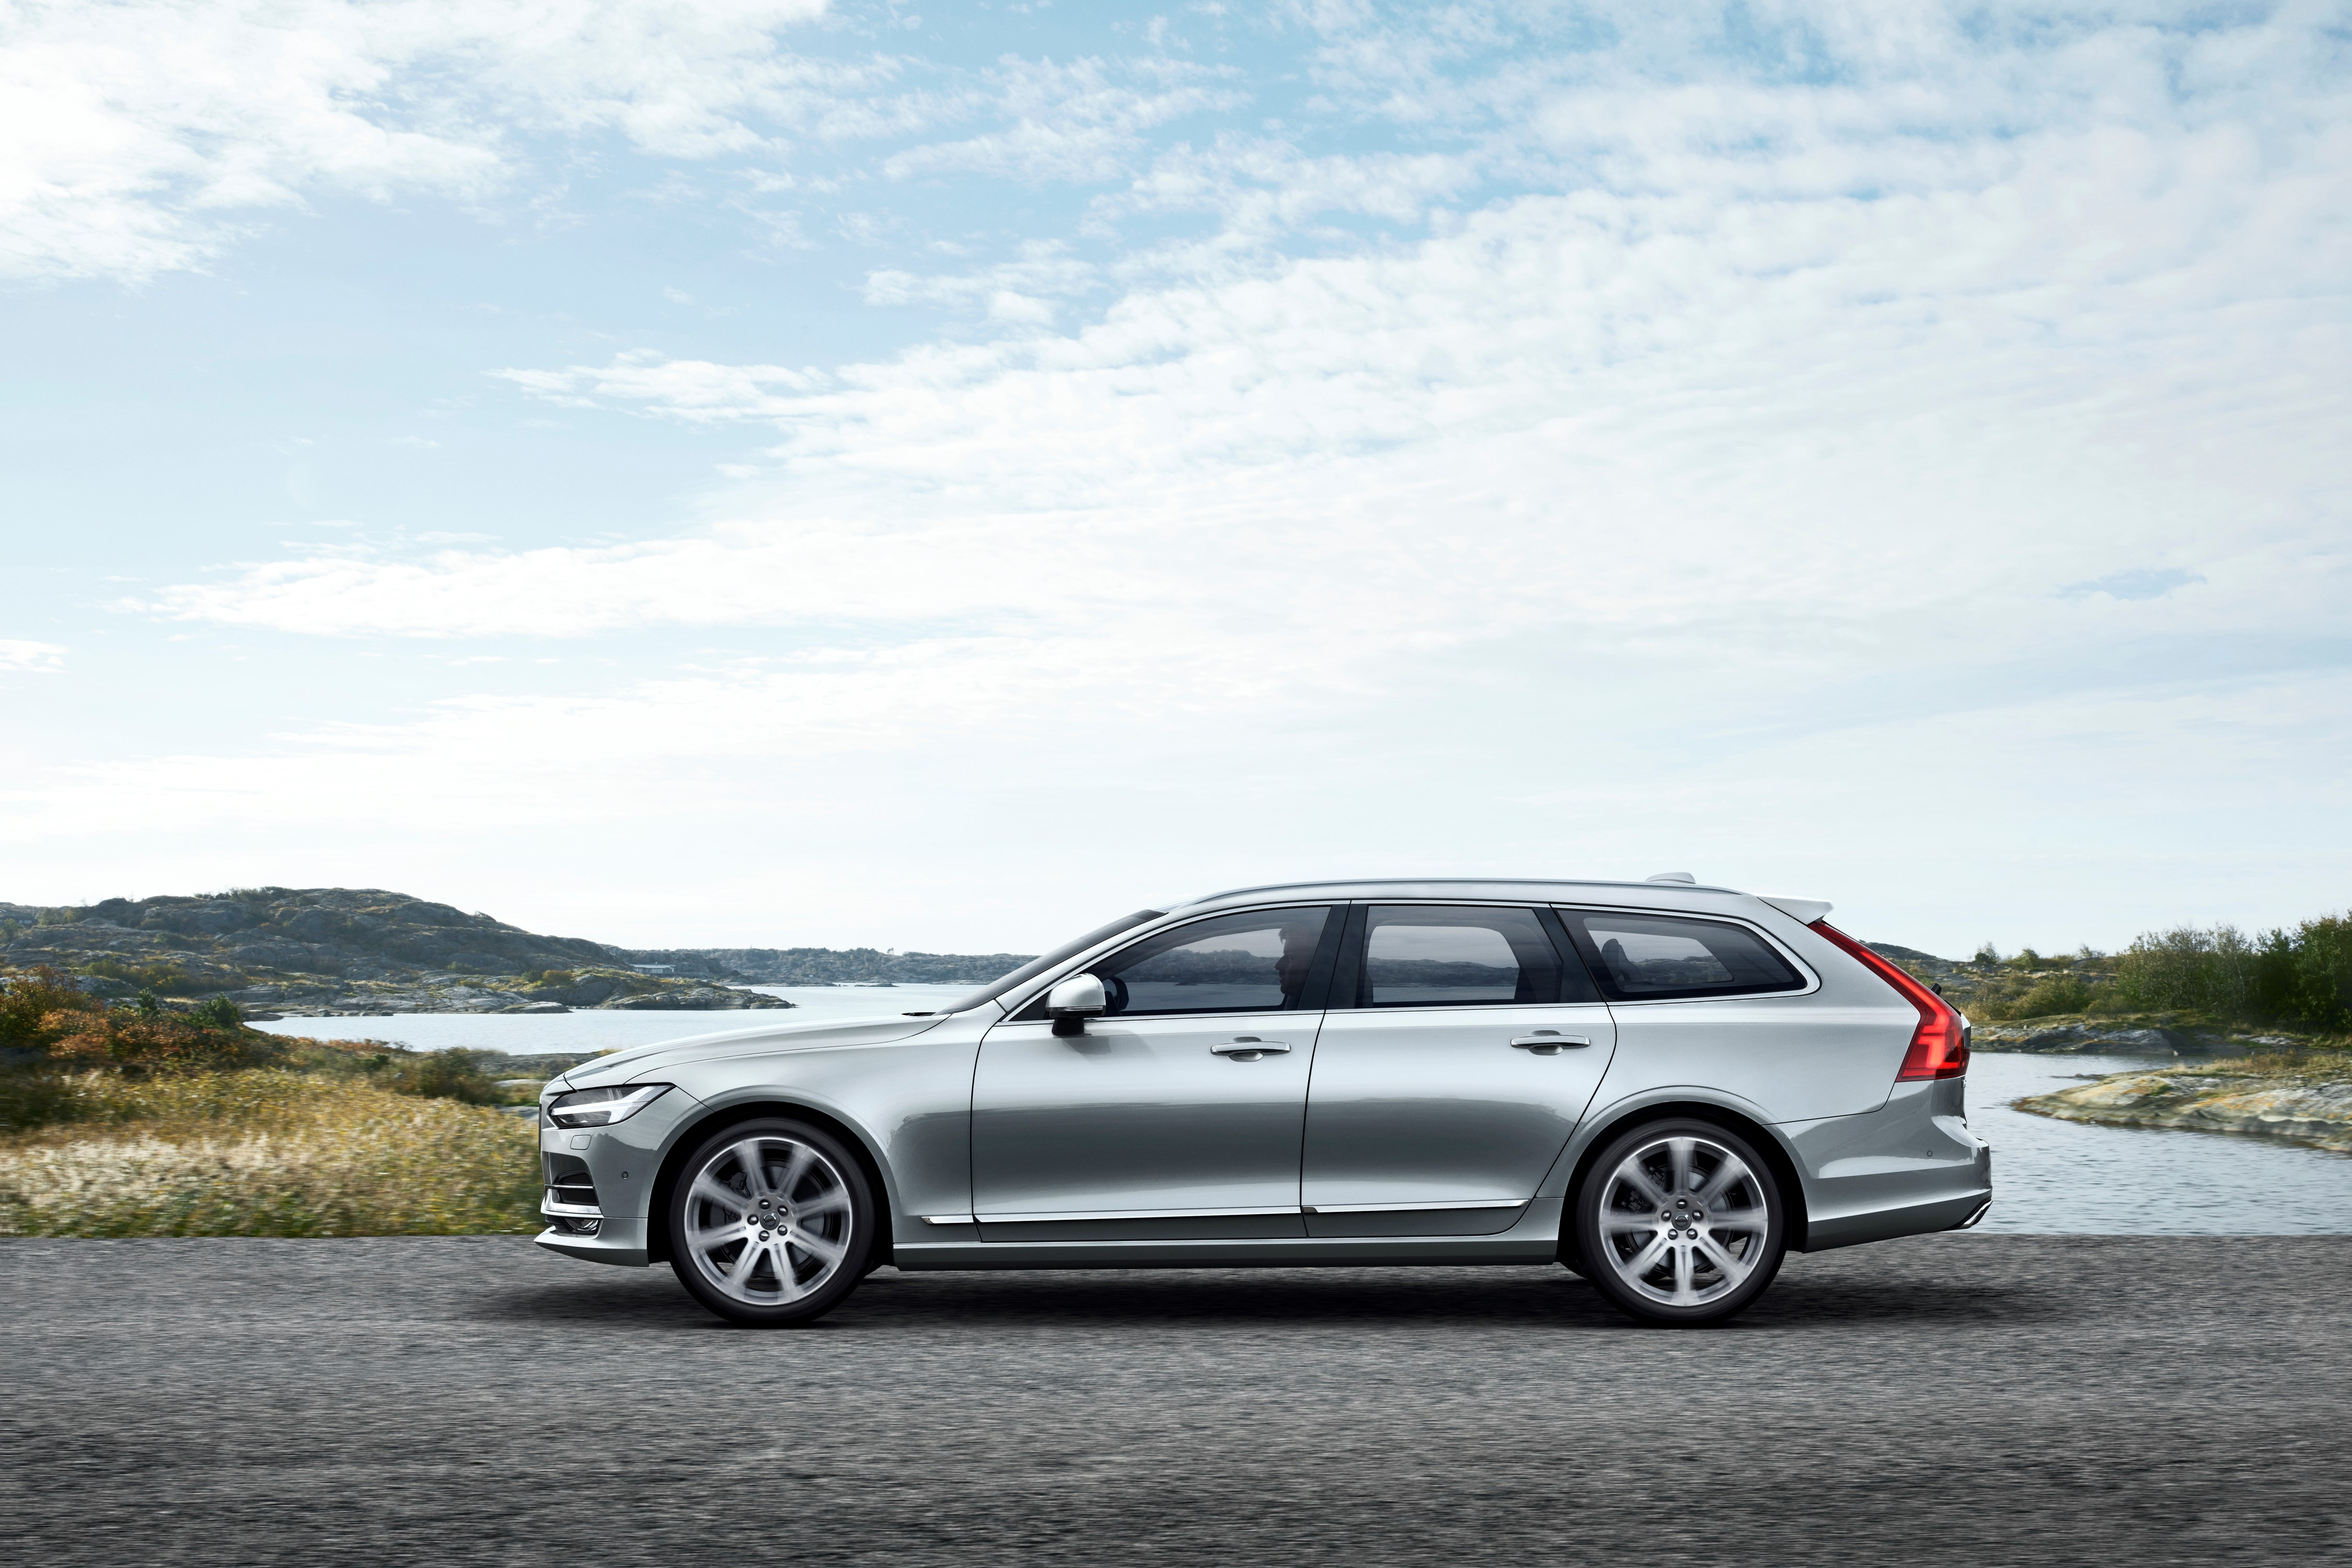 2016 Volvo V90 Wagon Officially Revealed In Sweden 104776 further Volvo Xc90 Lounge Console Concept Interior View 02 furthermore Photos Suzuki Vitara AllGrip TCSS image 29 further Volvo 2015 V60 S60 And Xc60 Drive E First Drive 22313960 additionally Qashqai 2014 Vs Xtrail 2014. on 2015 volvo xc60 wagon